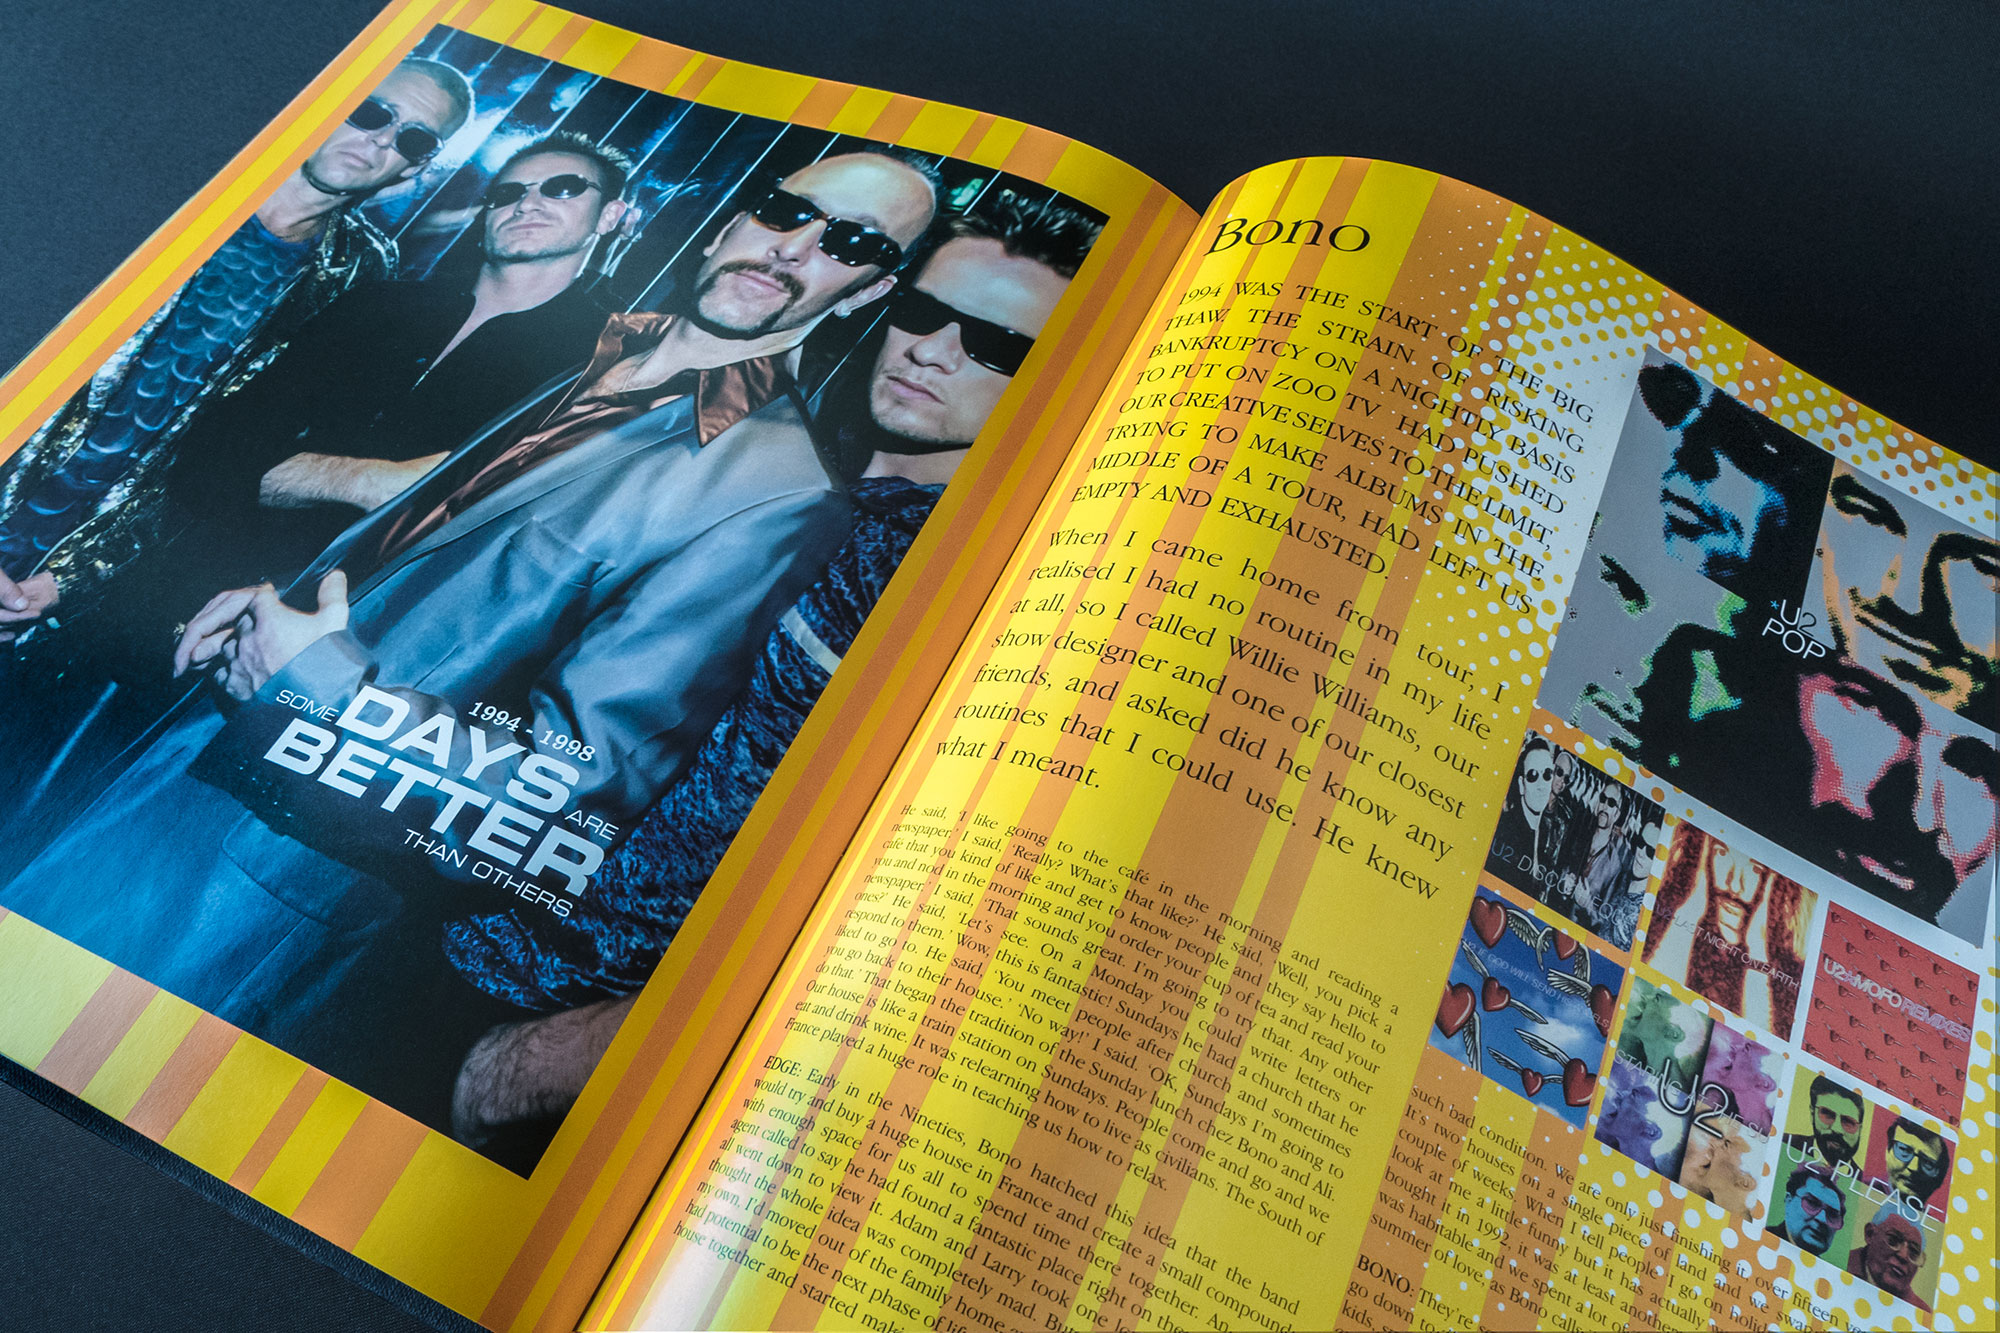 U2 by U2 Book Spread Graphic Design London Dublin 01